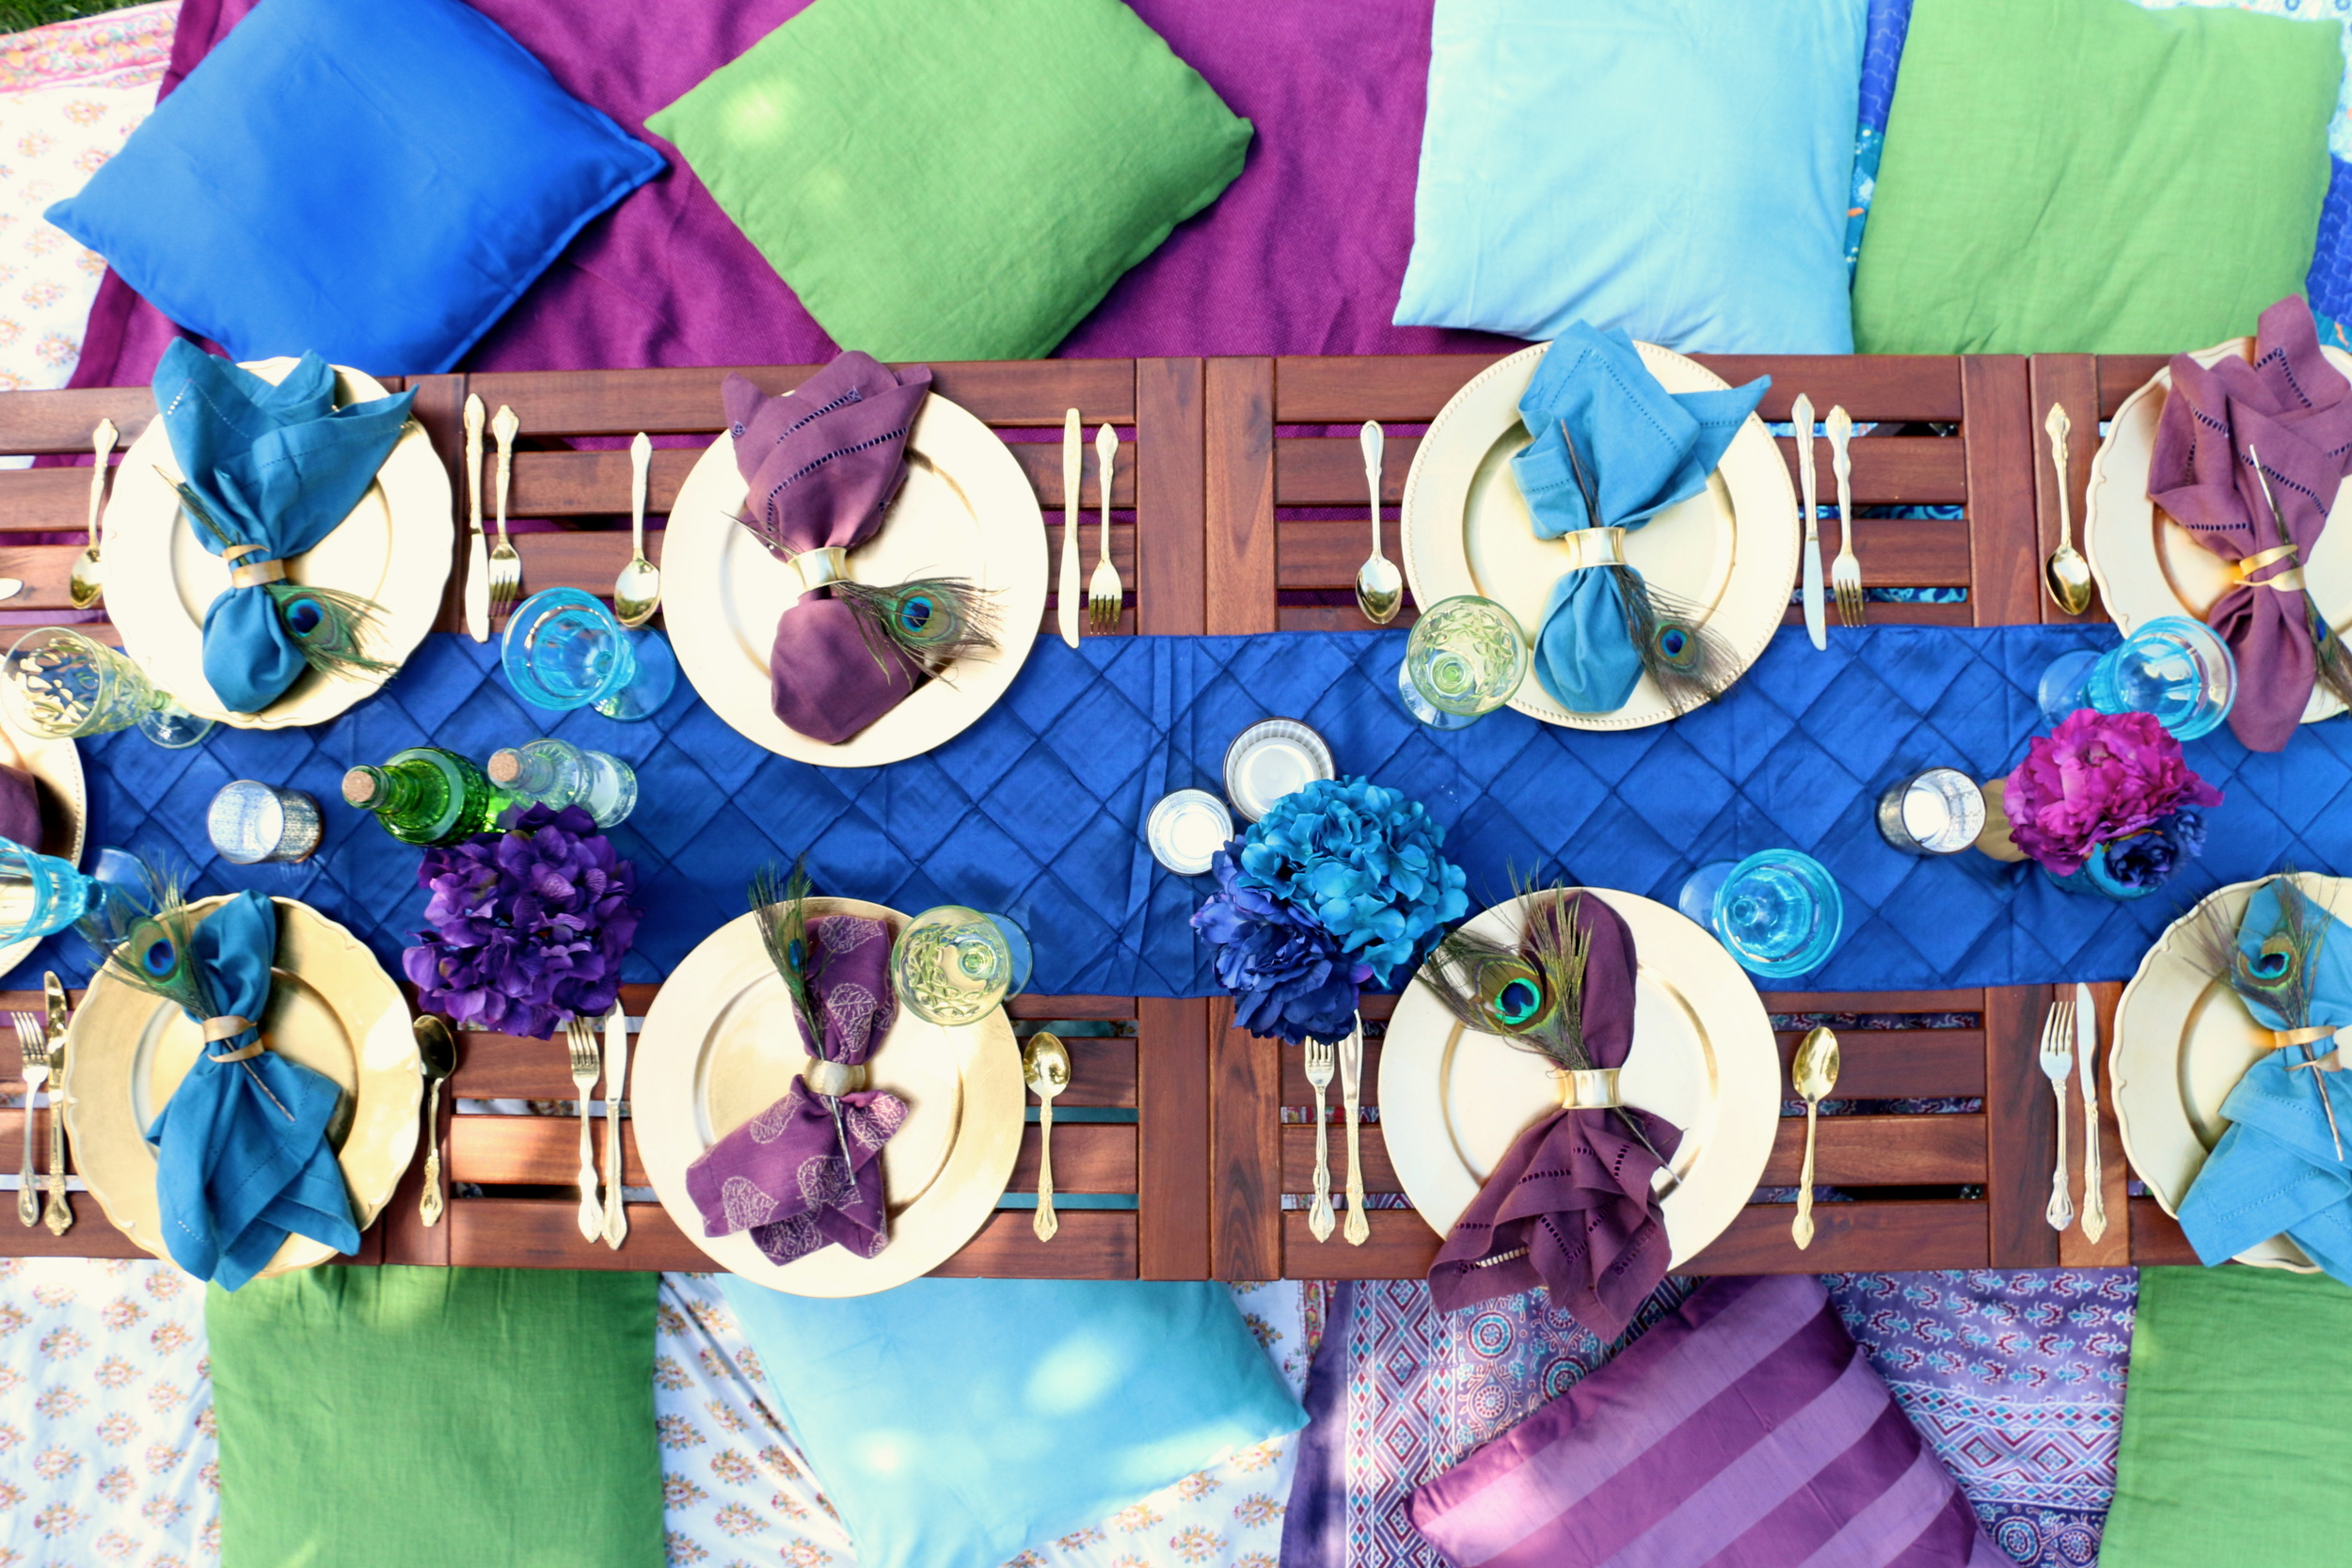 Royal Purples, blues, & emerald greens. The Peacock Goddess Party is a divine collection that is prepackaged and ready to rent from @inJOYtheParty!